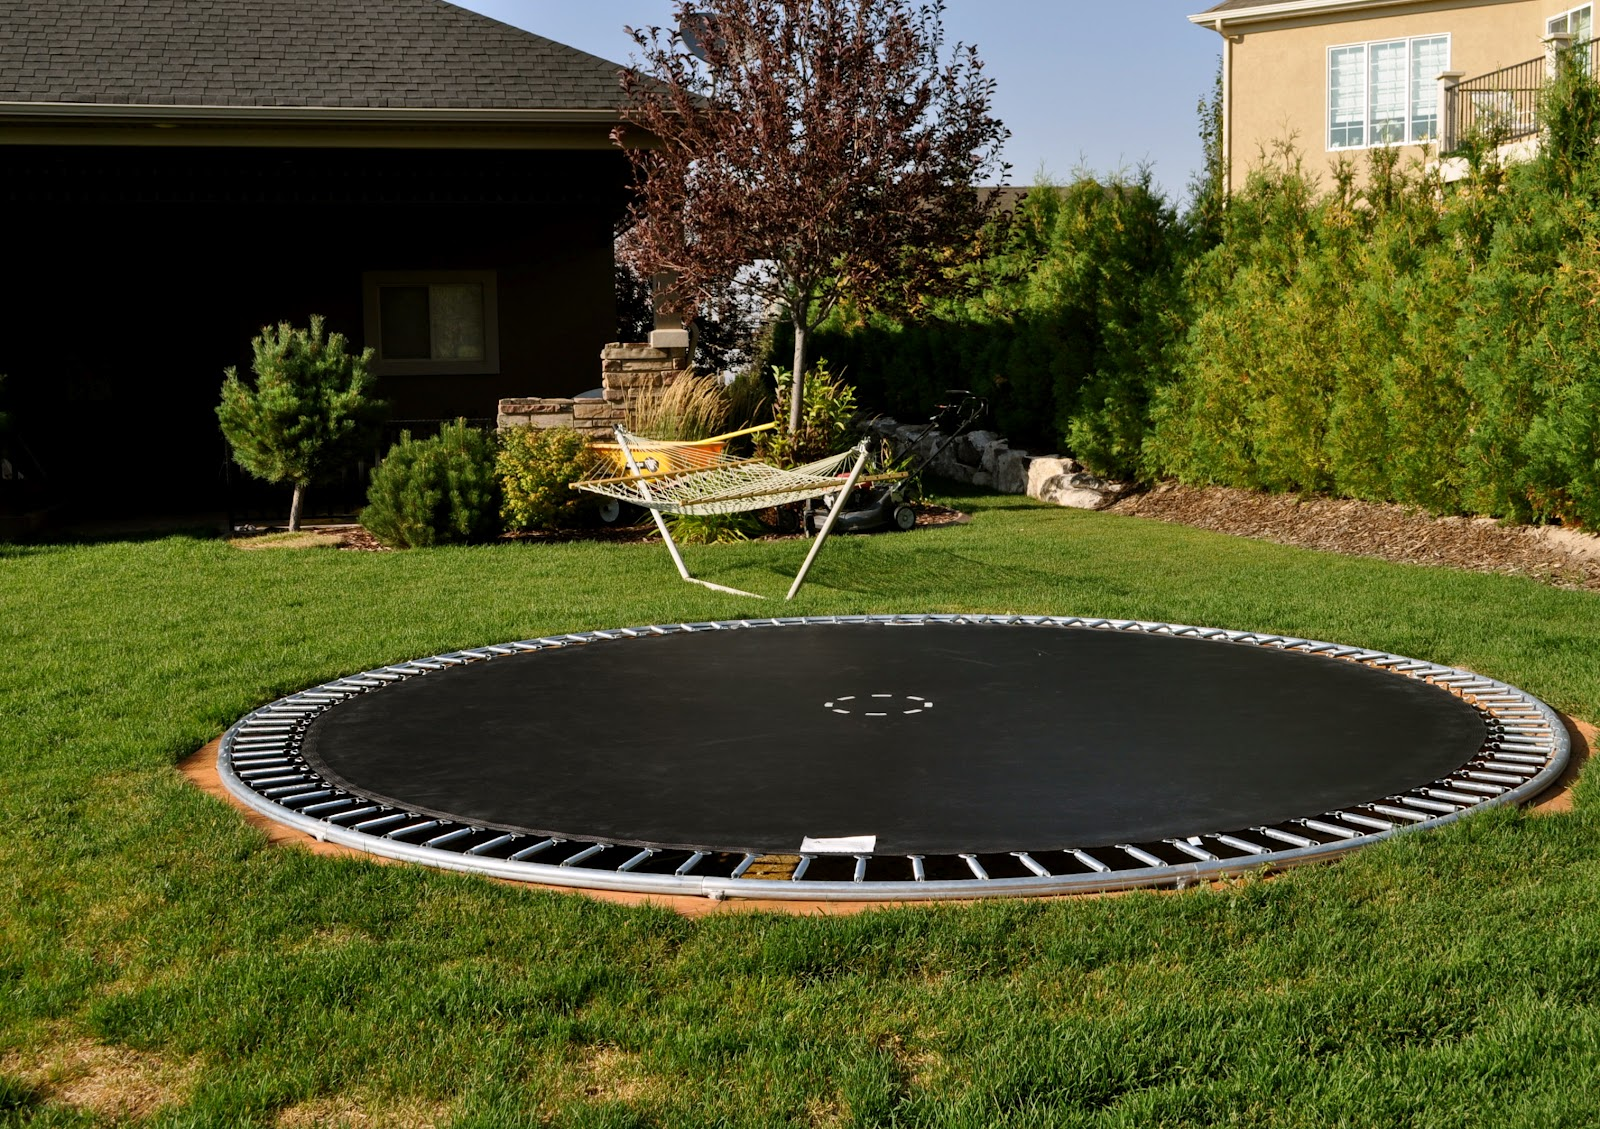 1000+ images about Trampolines on Pinterest | In ground ...